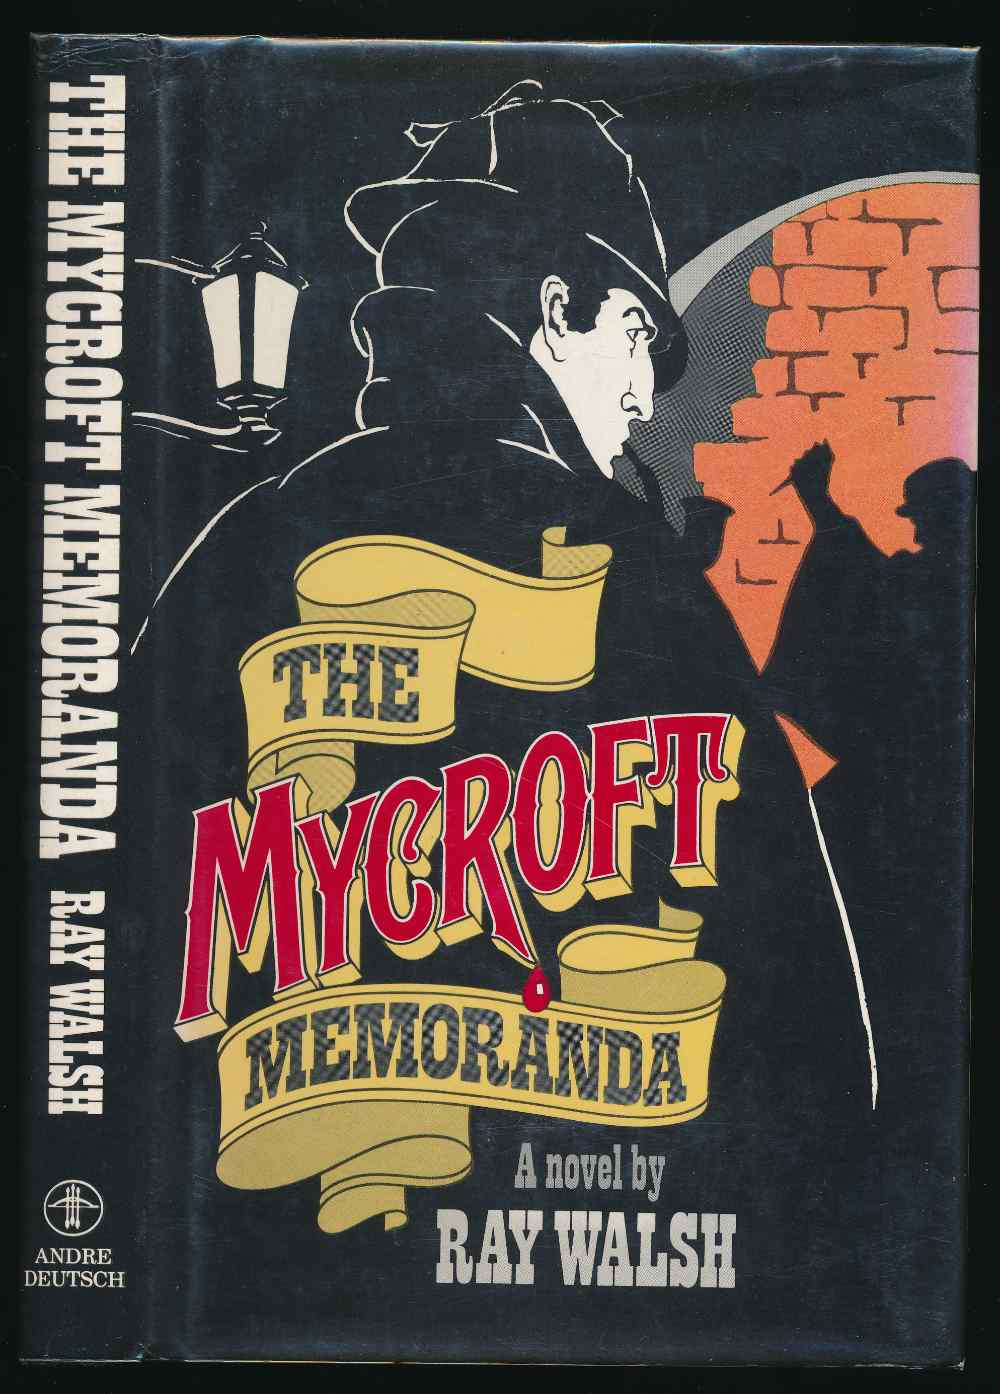 The Mycroft memoranda : a novel